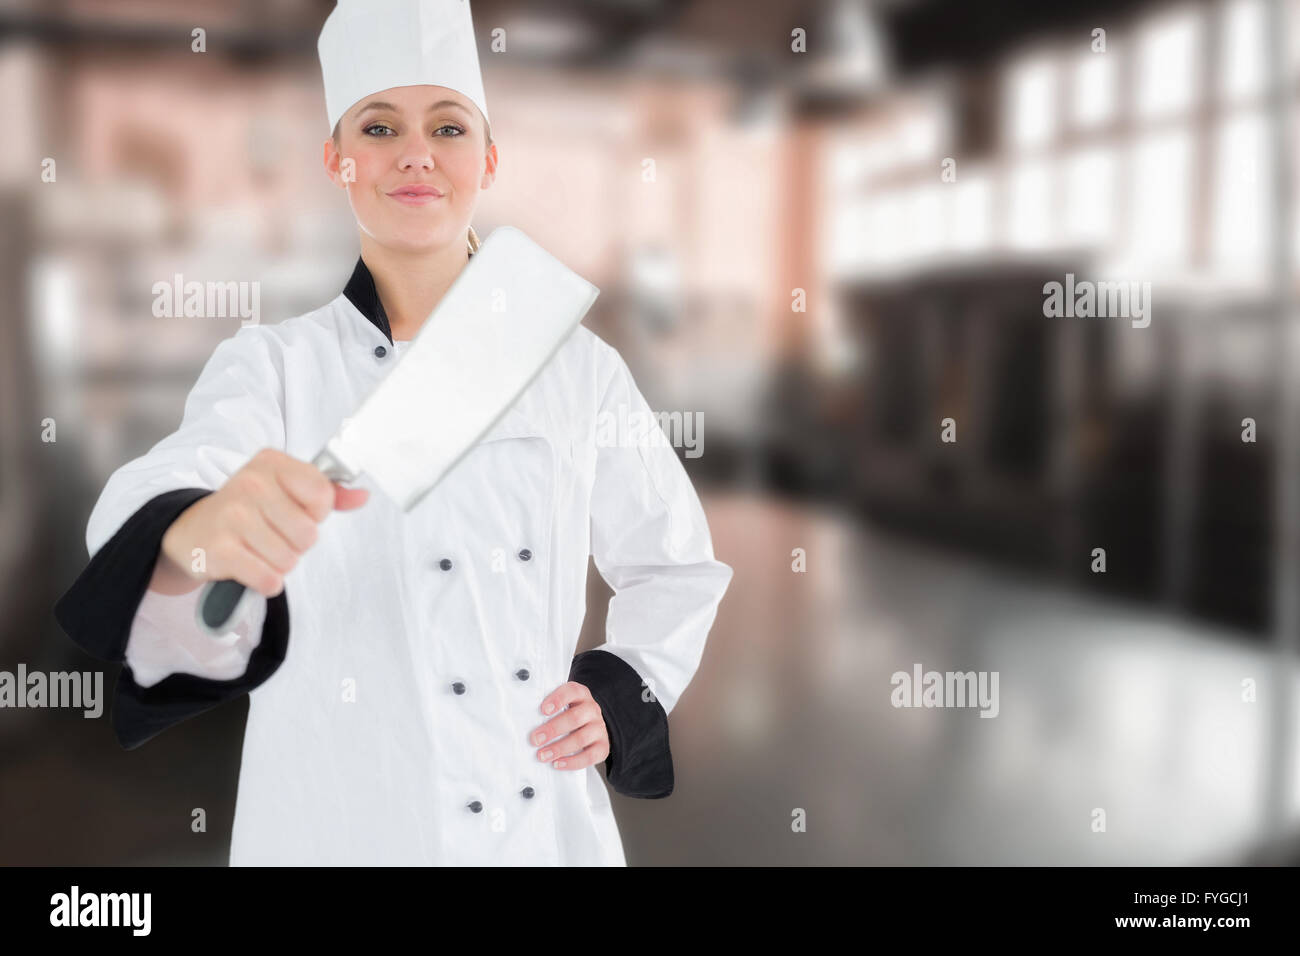 Composite image of portrait of female chef with meat cleaver - Stock Image